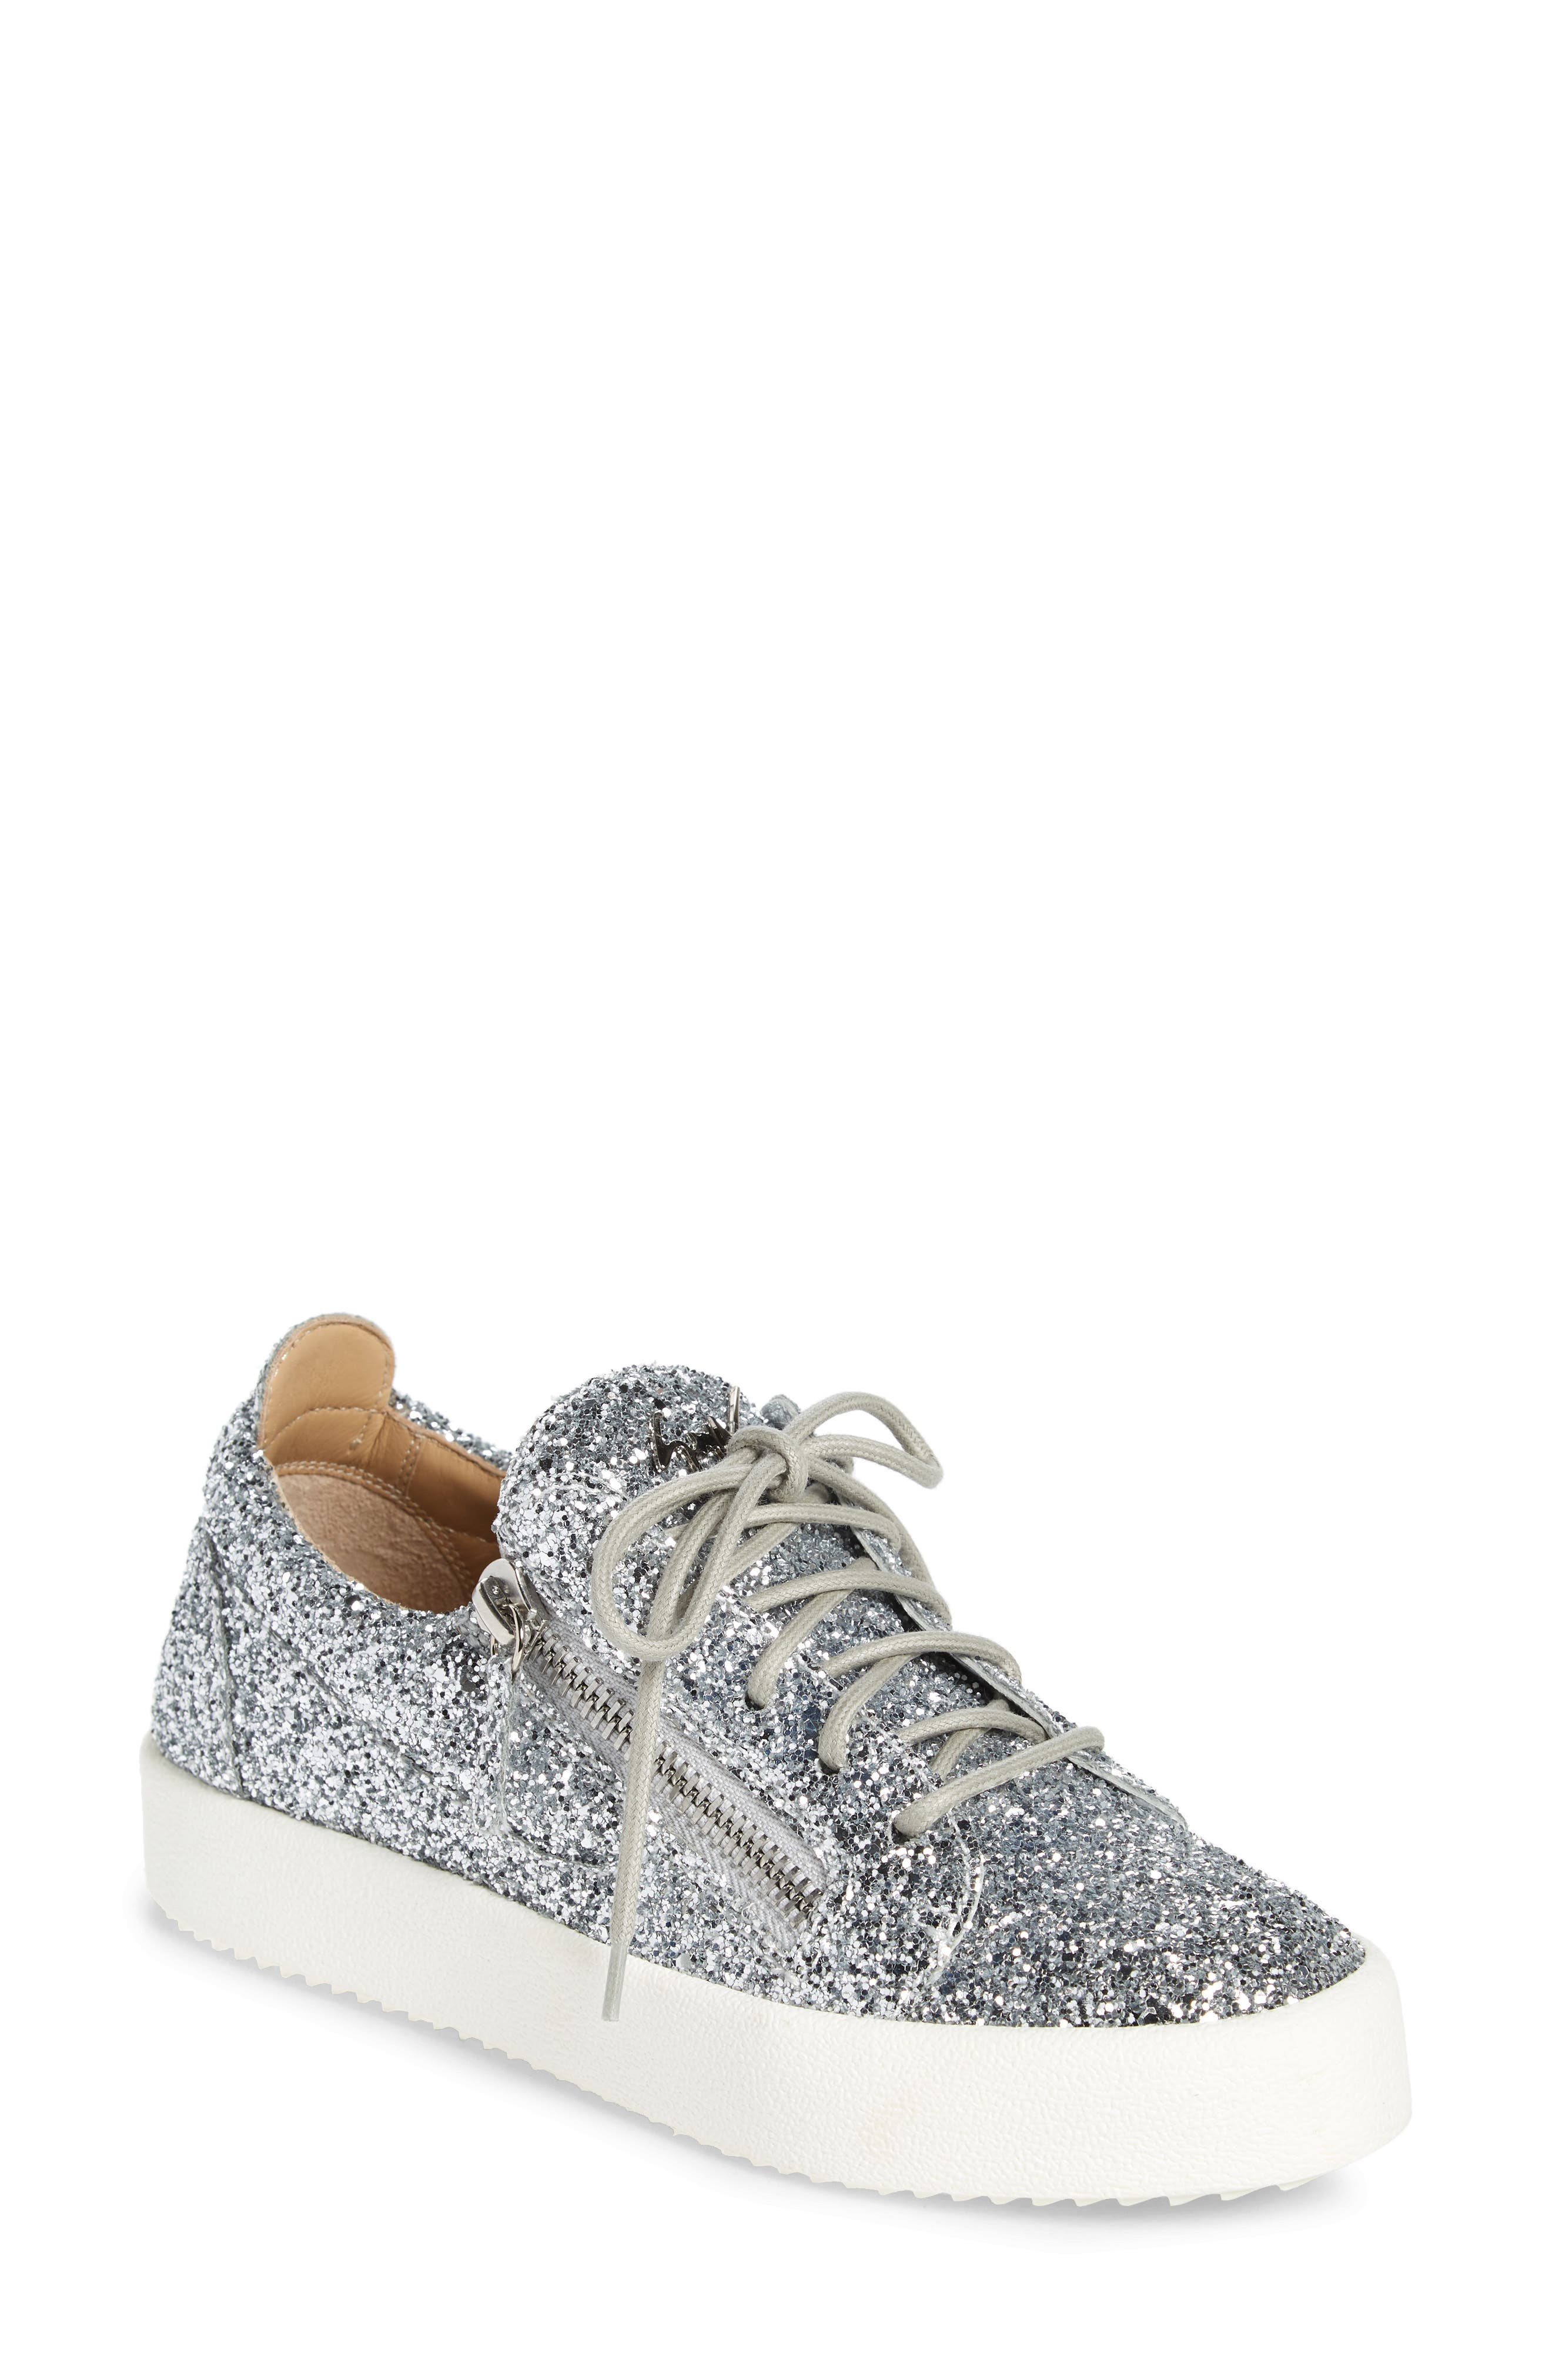 May London Low Top Sneaker,                             Main thumbnail 1, color,                             SILVER GLITTER